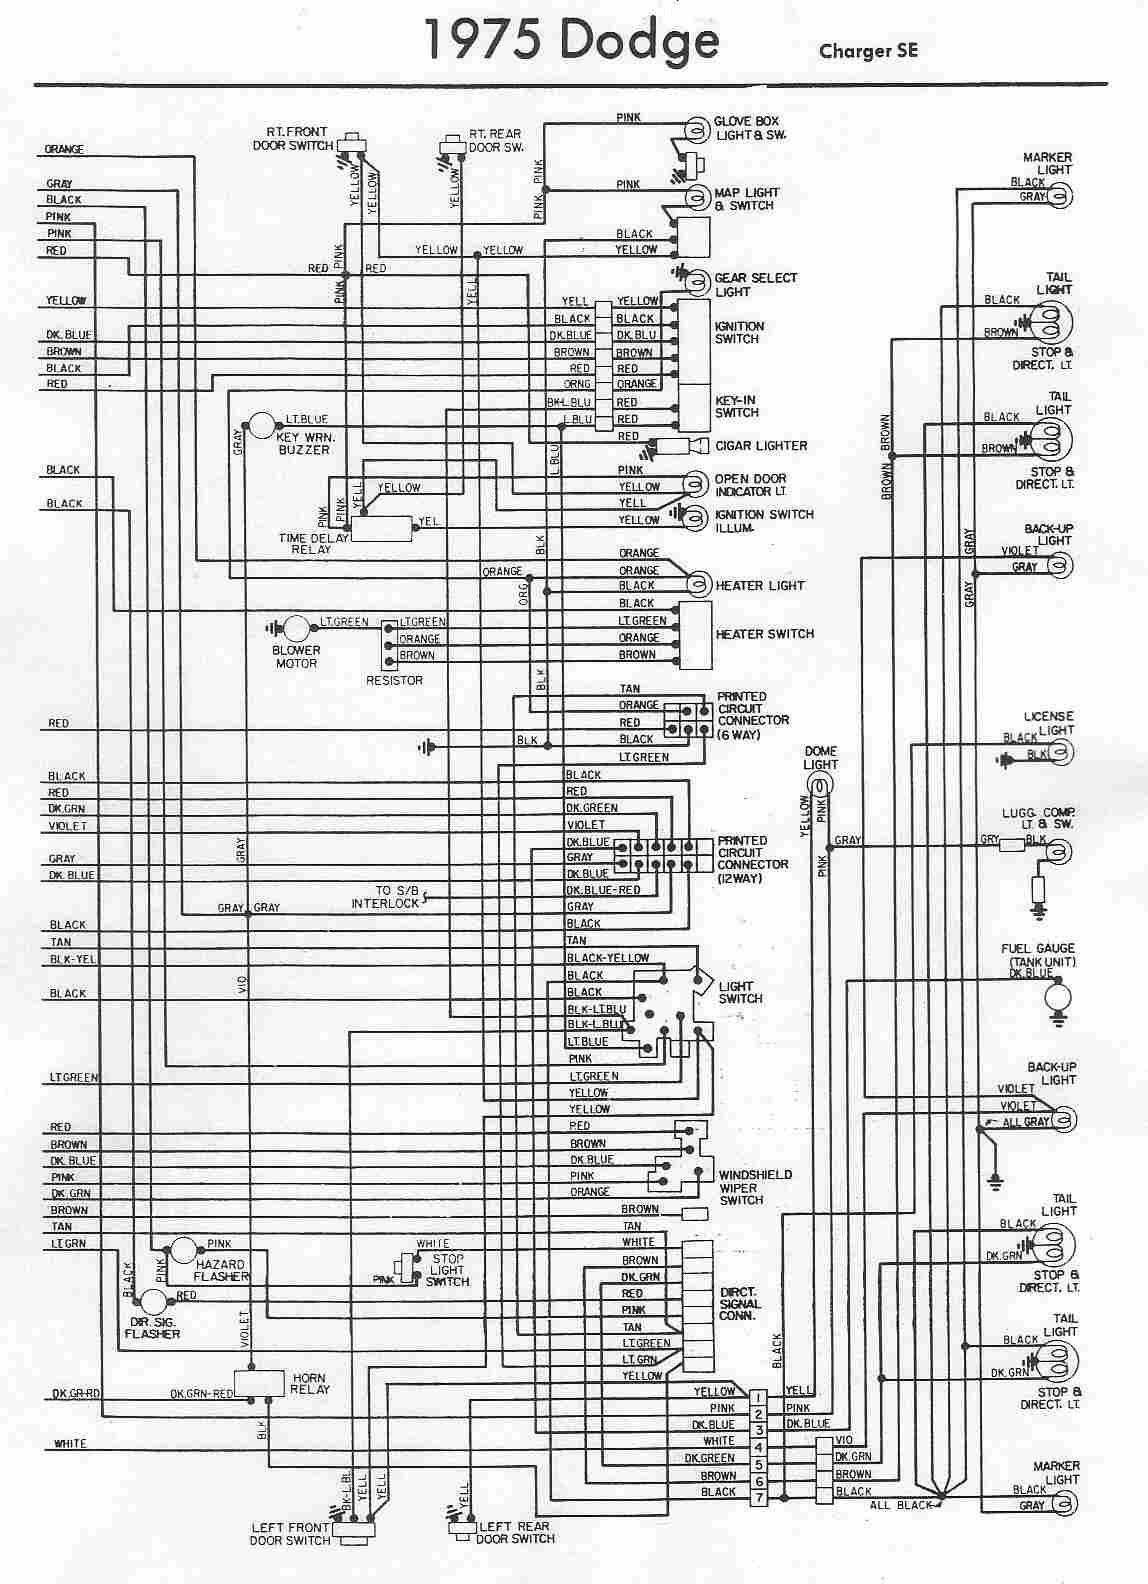 hight resolution of 1977 dodge w200 wiring diagram wiring diagram new1973 dodge w200 wiring diagram wiring diagram library 1977